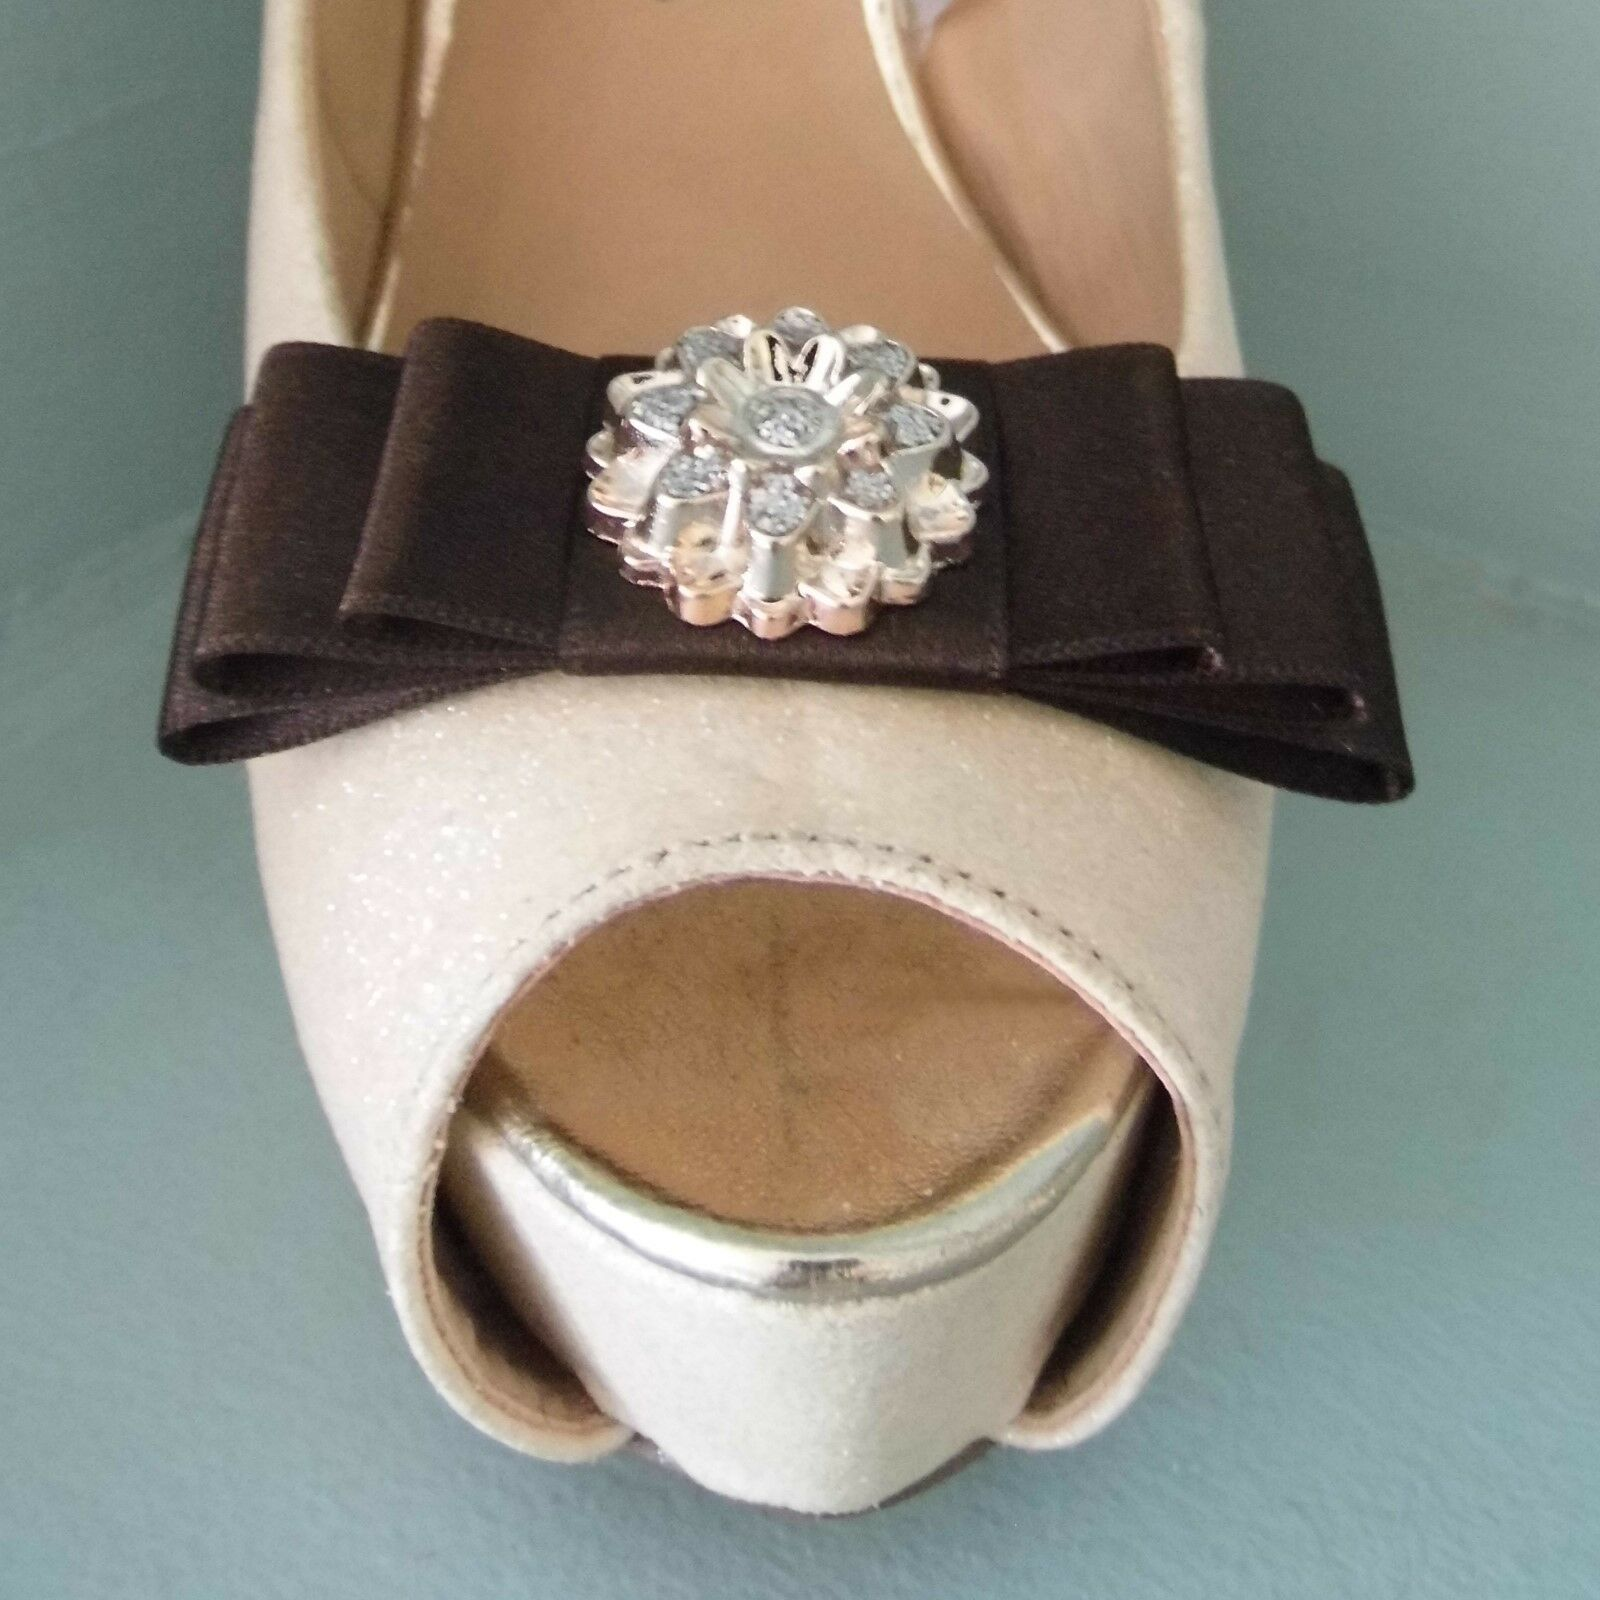 2 Dark Brown Bow Clips for Shoes with Gold & Diamante Style Centre